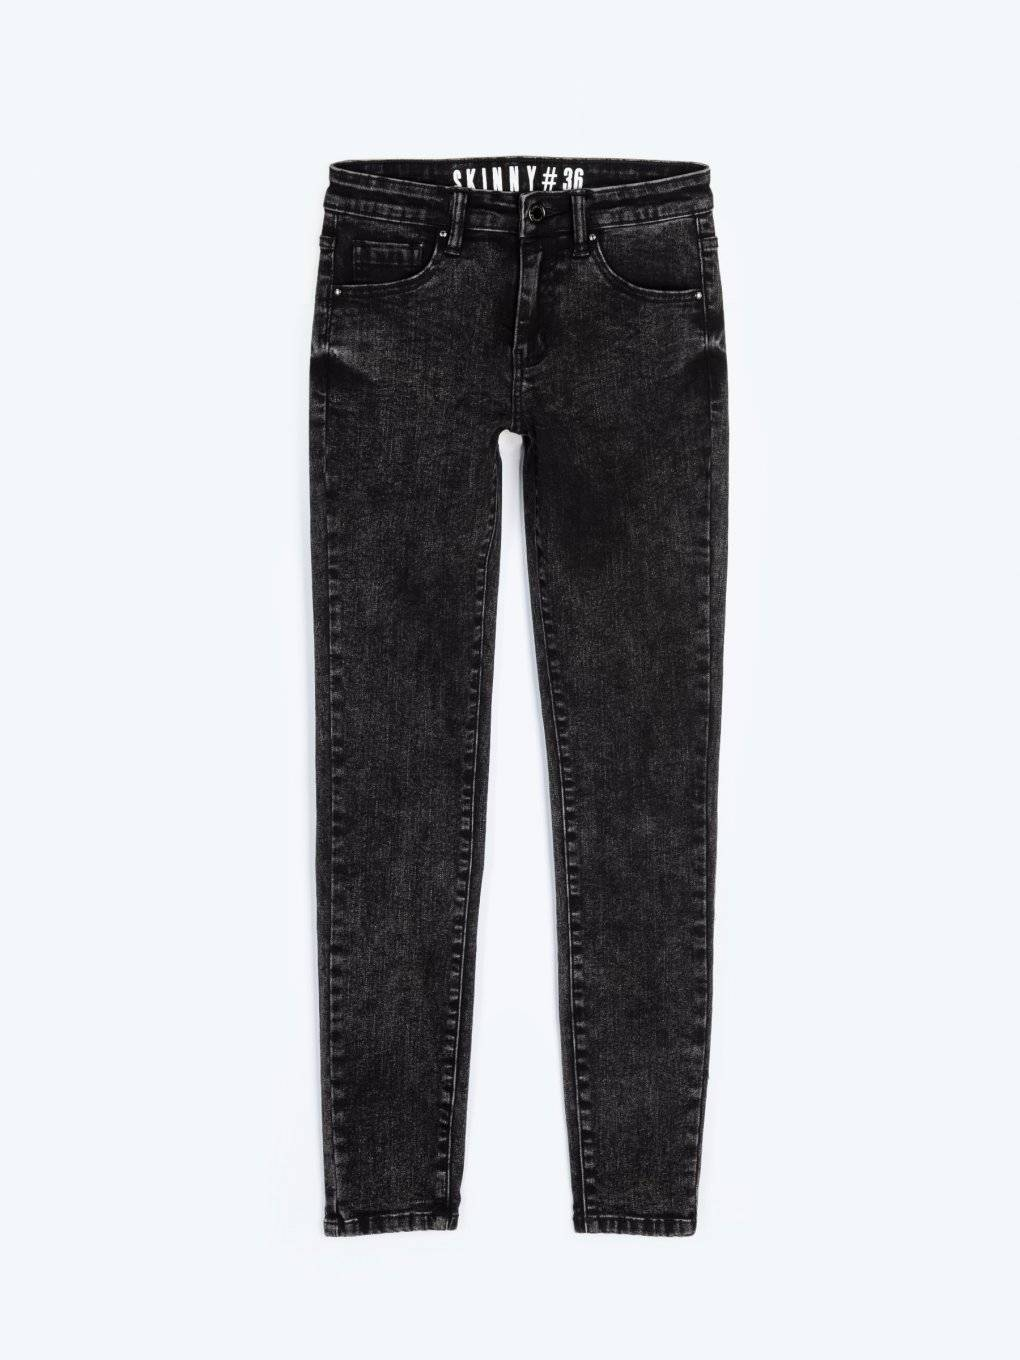 Skinny jeans with acid wash